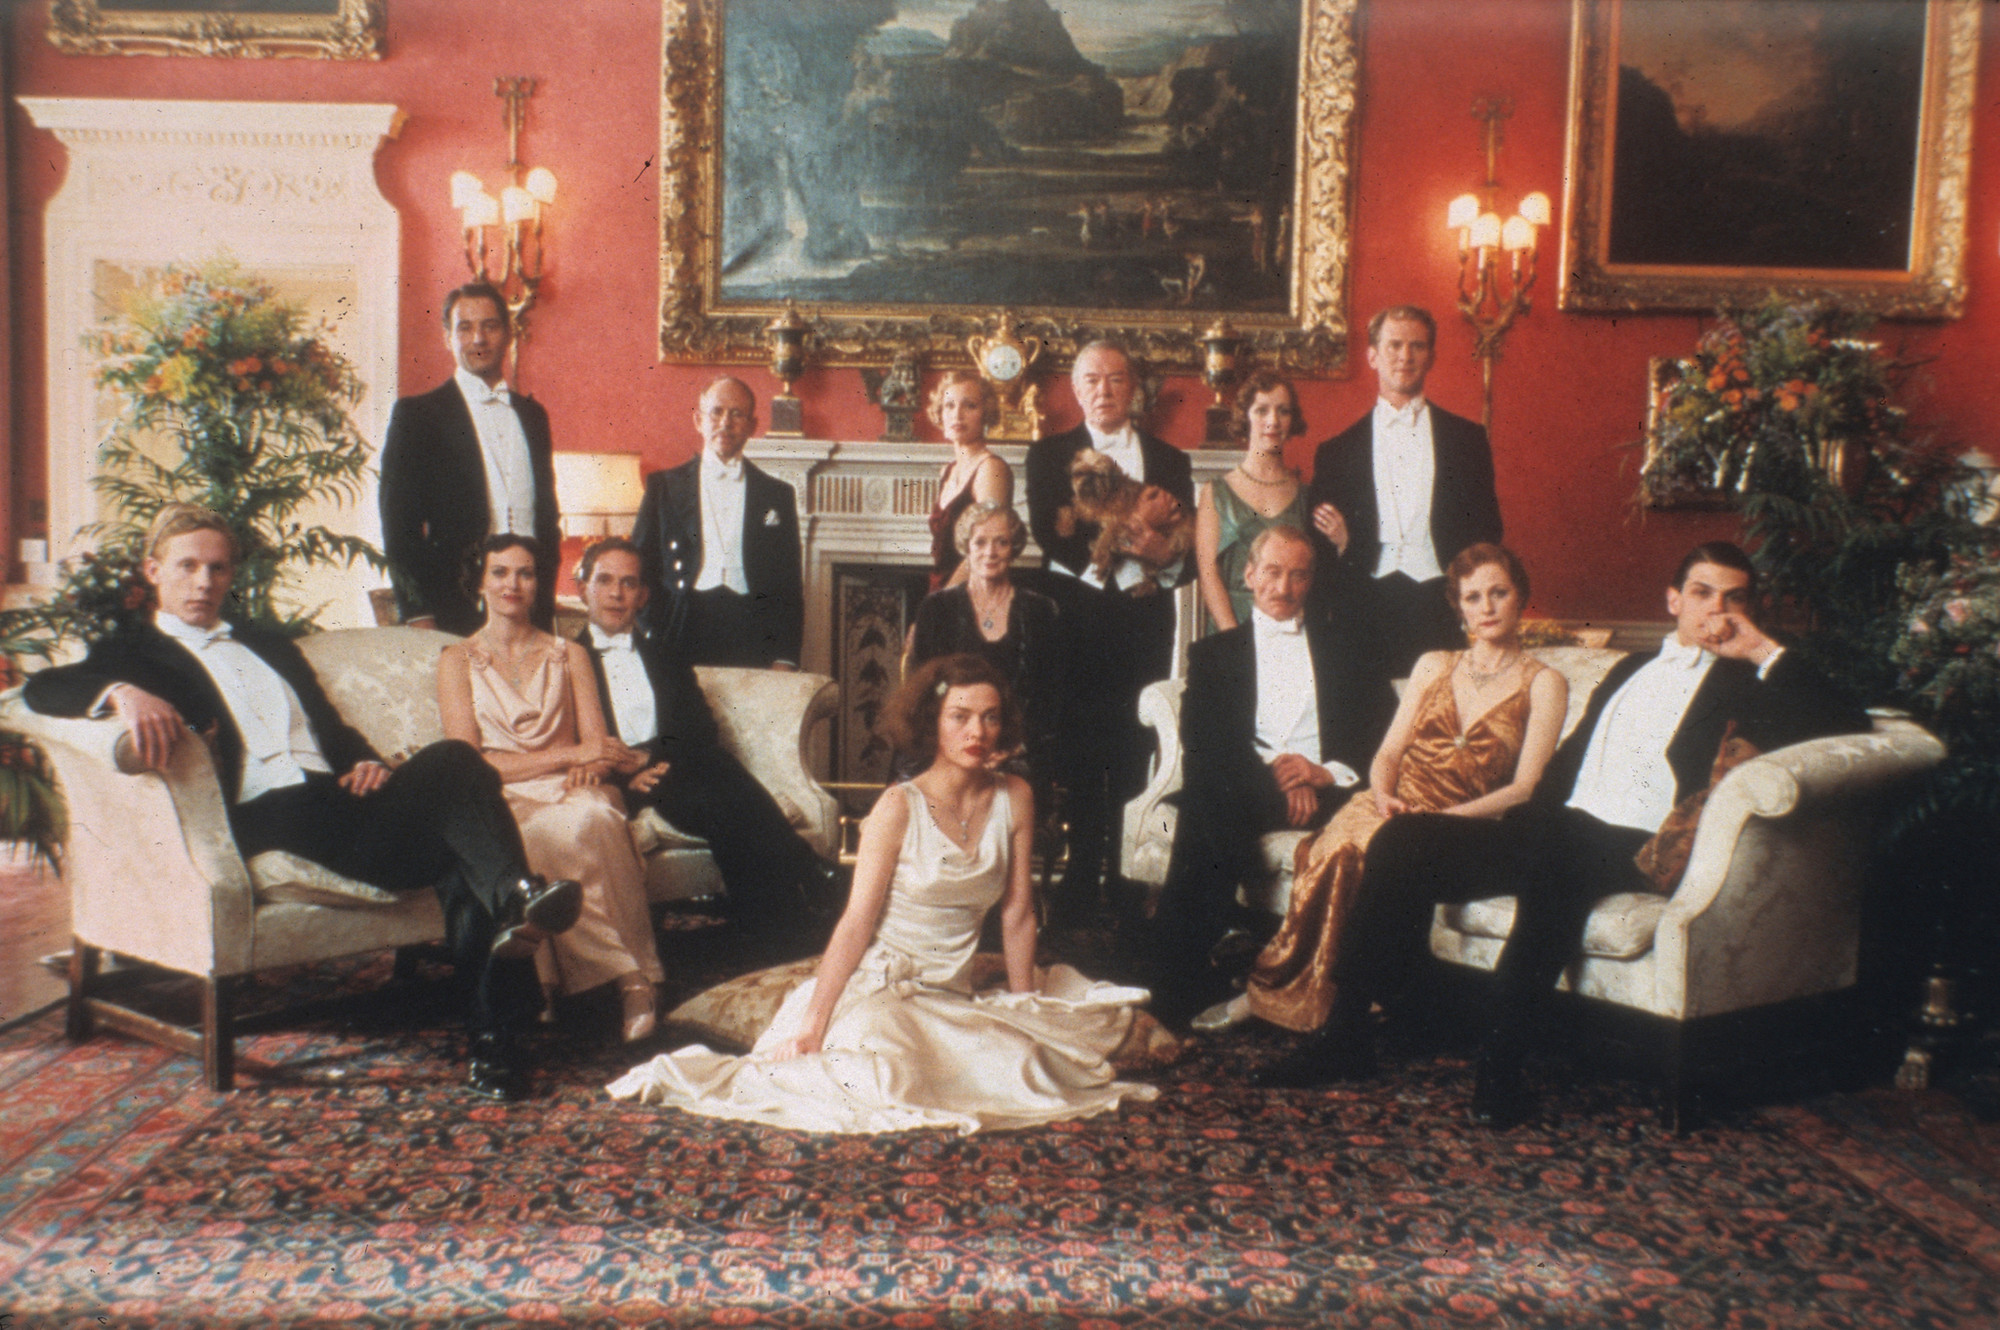 Gosford Park 2001 Directed By Robert Altman Moma